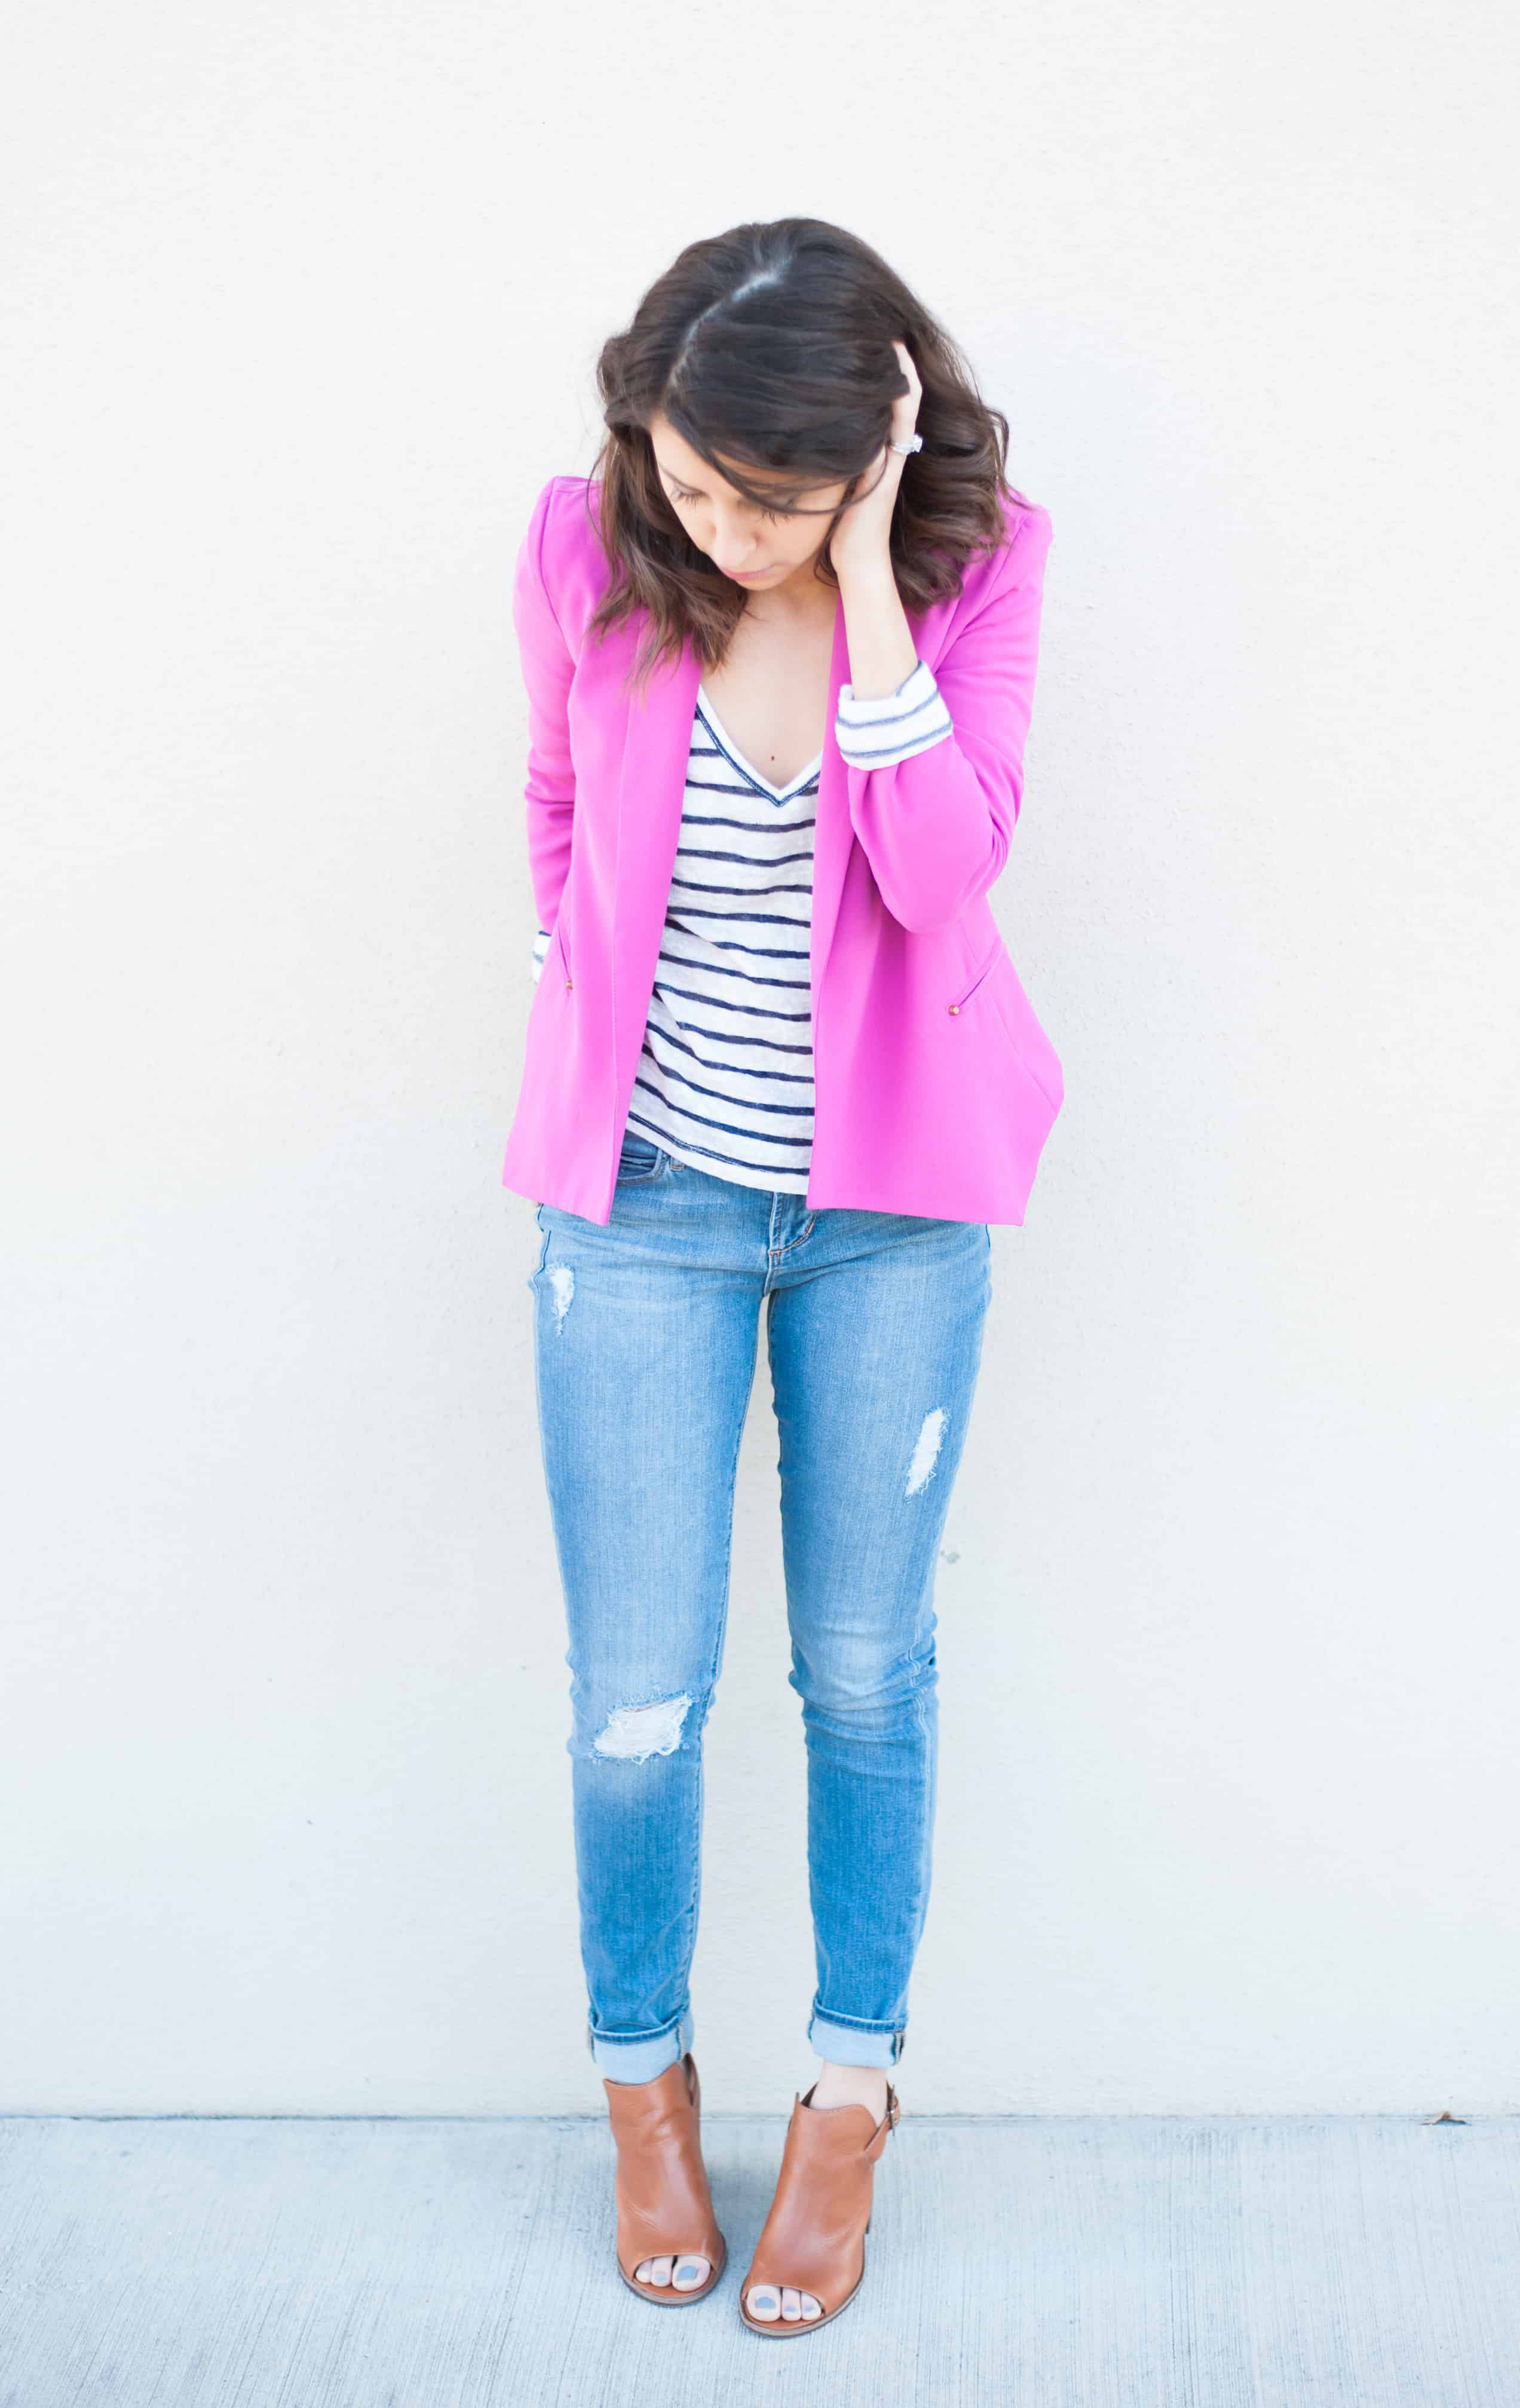 Dress Up Buttercup | Houston Fashion Blog - Dede Raad Pink Blazer Casual Look